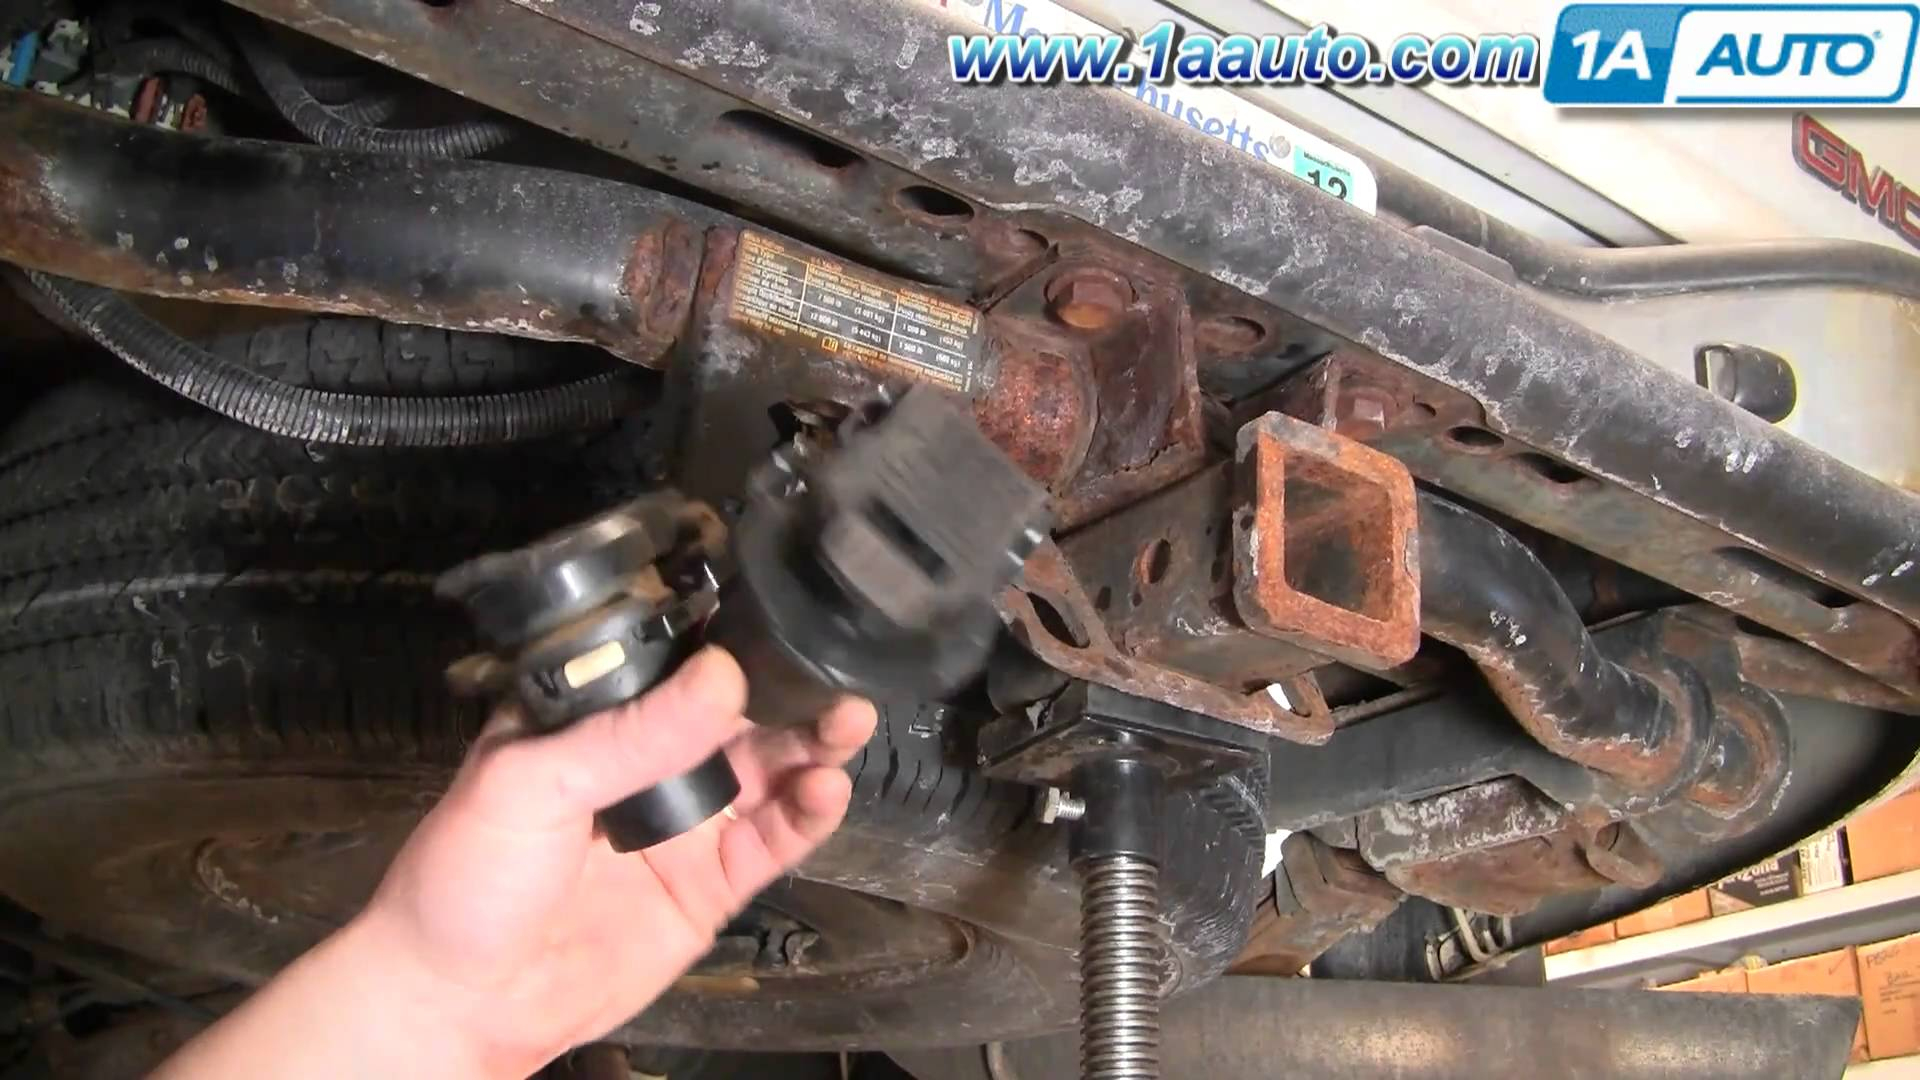 02 Chevy Trailblazer Engine Wiring Harness | Wiring Library - 7 Pin Trailer Connector Wiring Diagram